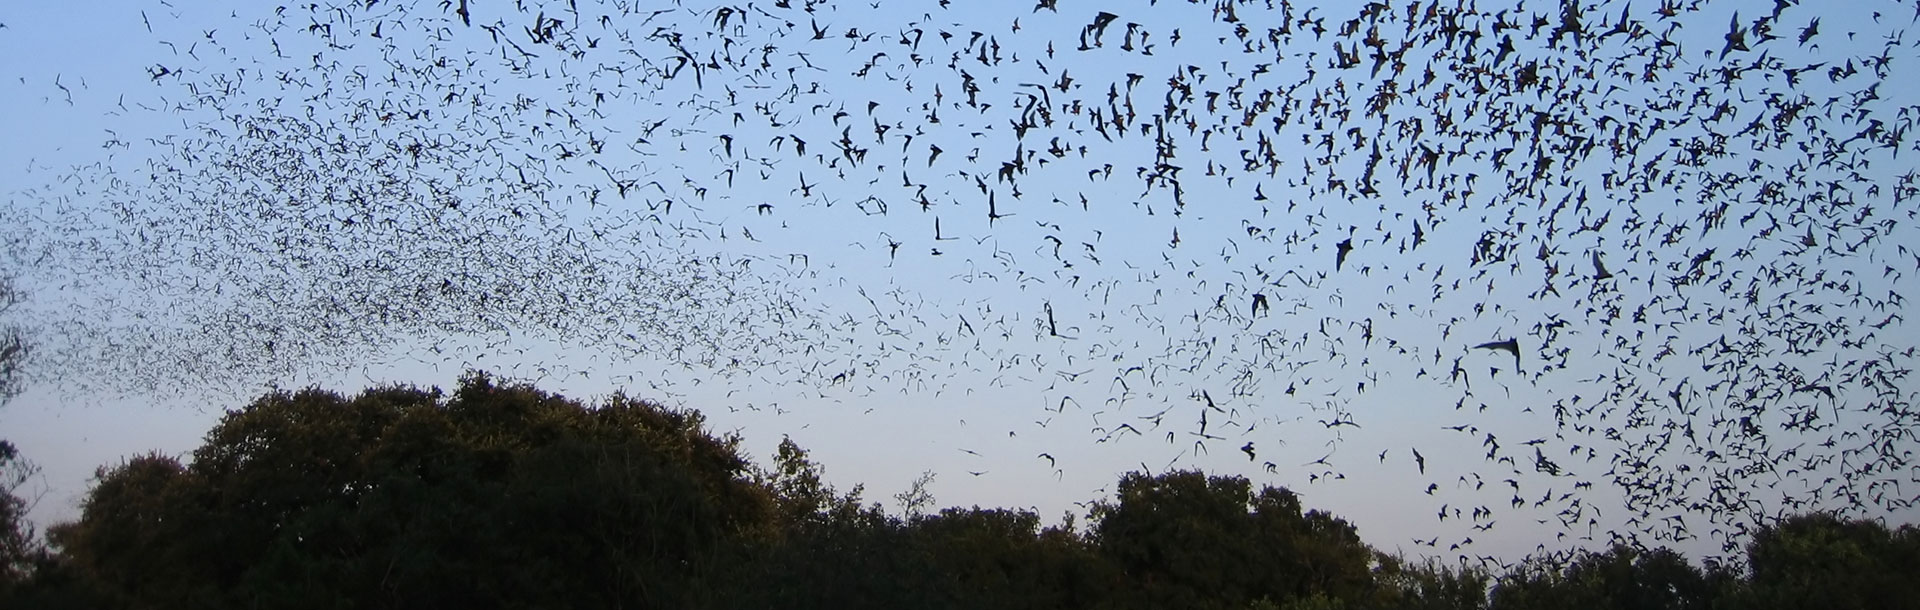 Mexican free-tailed bats in Texas | Photo: iStock Photo/derwood05